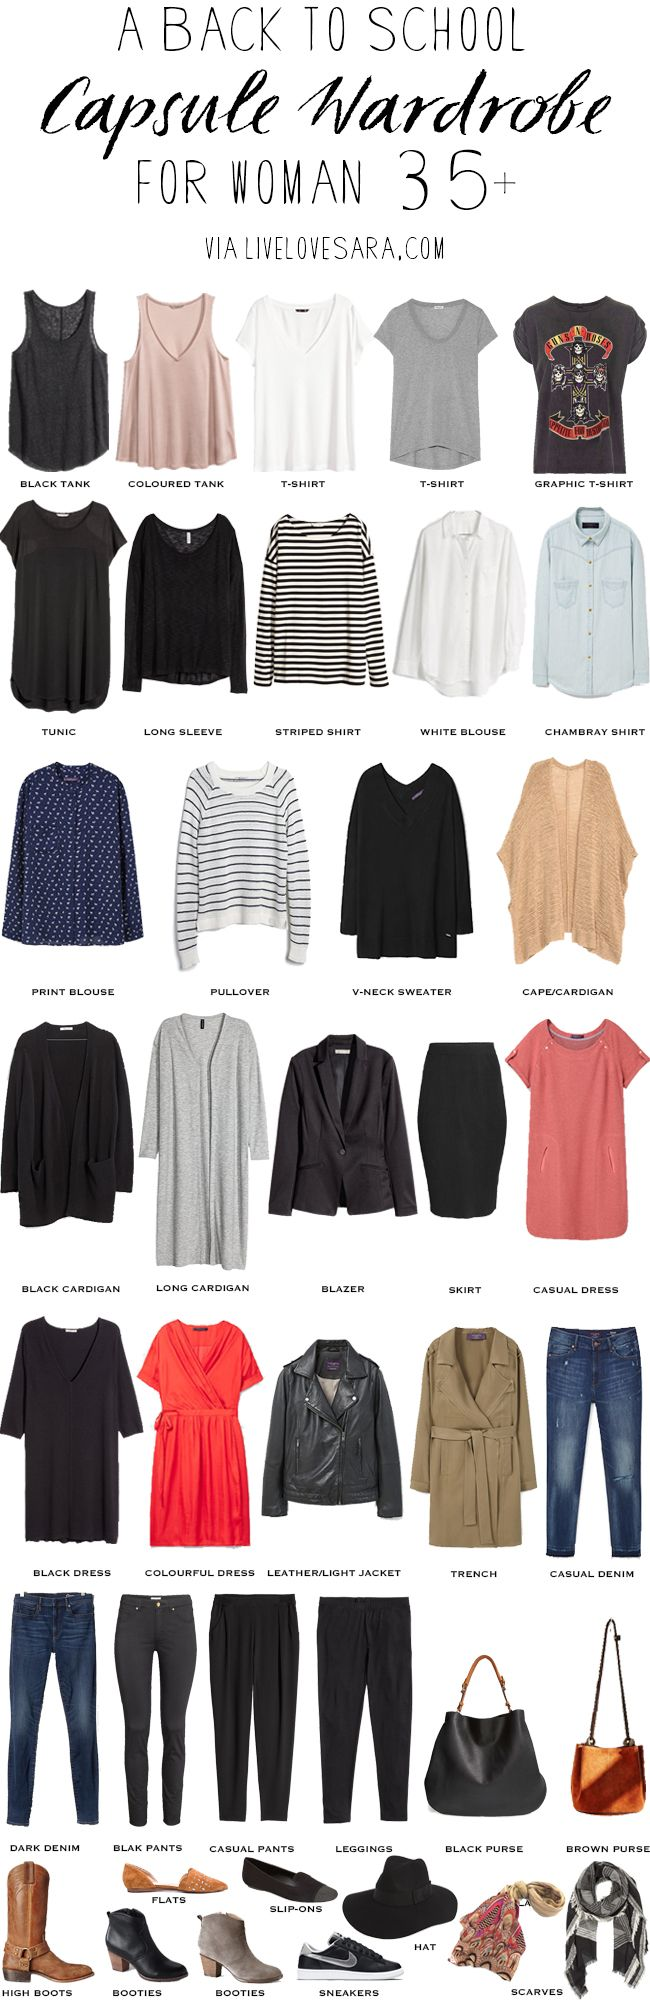 Back to school wardrobe for over 35. What do you wear when you are over 35 and headed back to school for the first